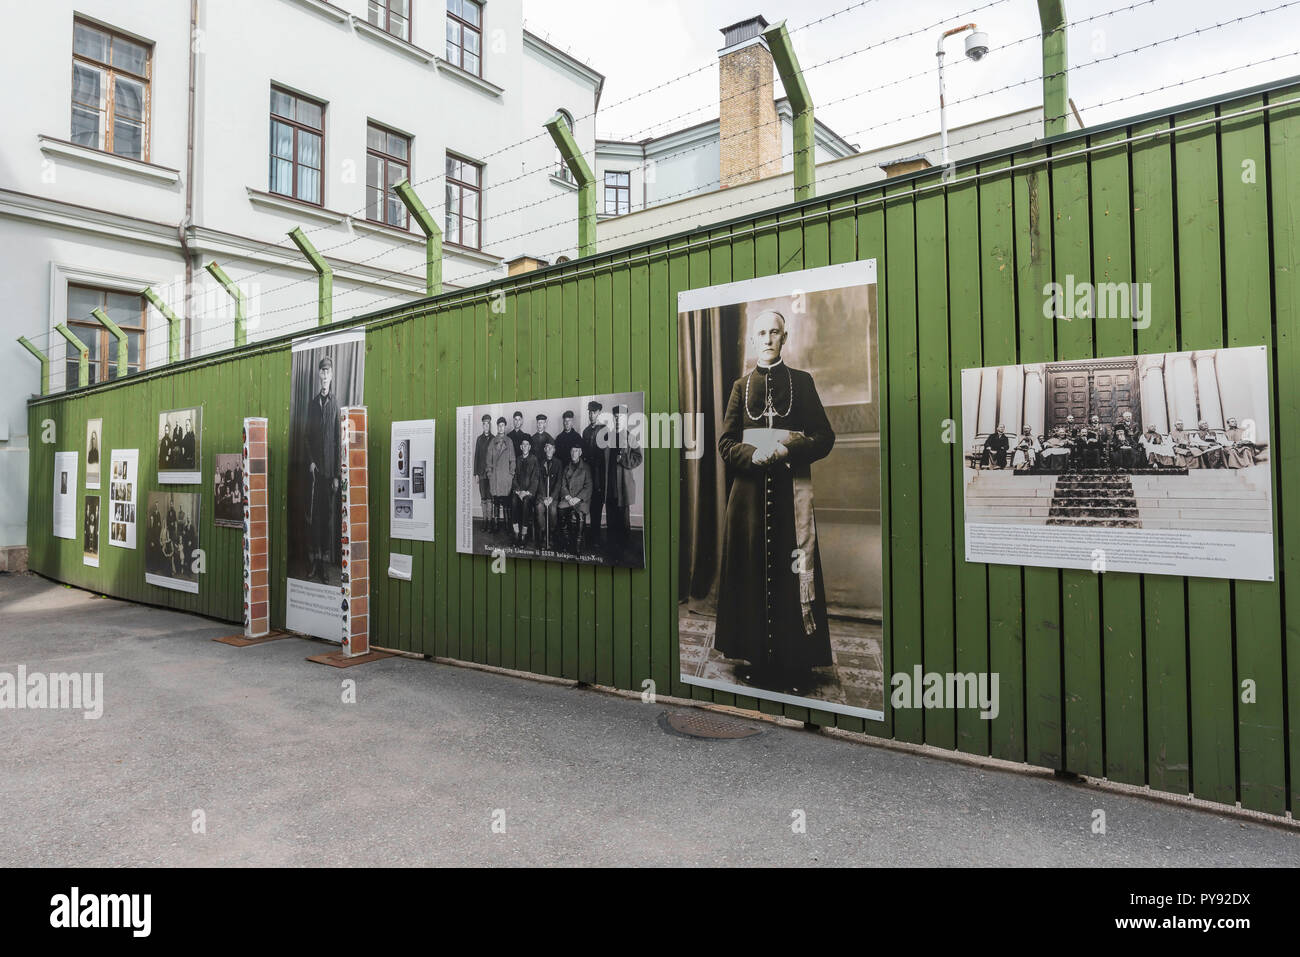 Vilnius Museum of Genocide Victims,display in the former prison yard of the museum building showing Lithuanian clergy exiled to Siberia by the Soviets - Stock Image